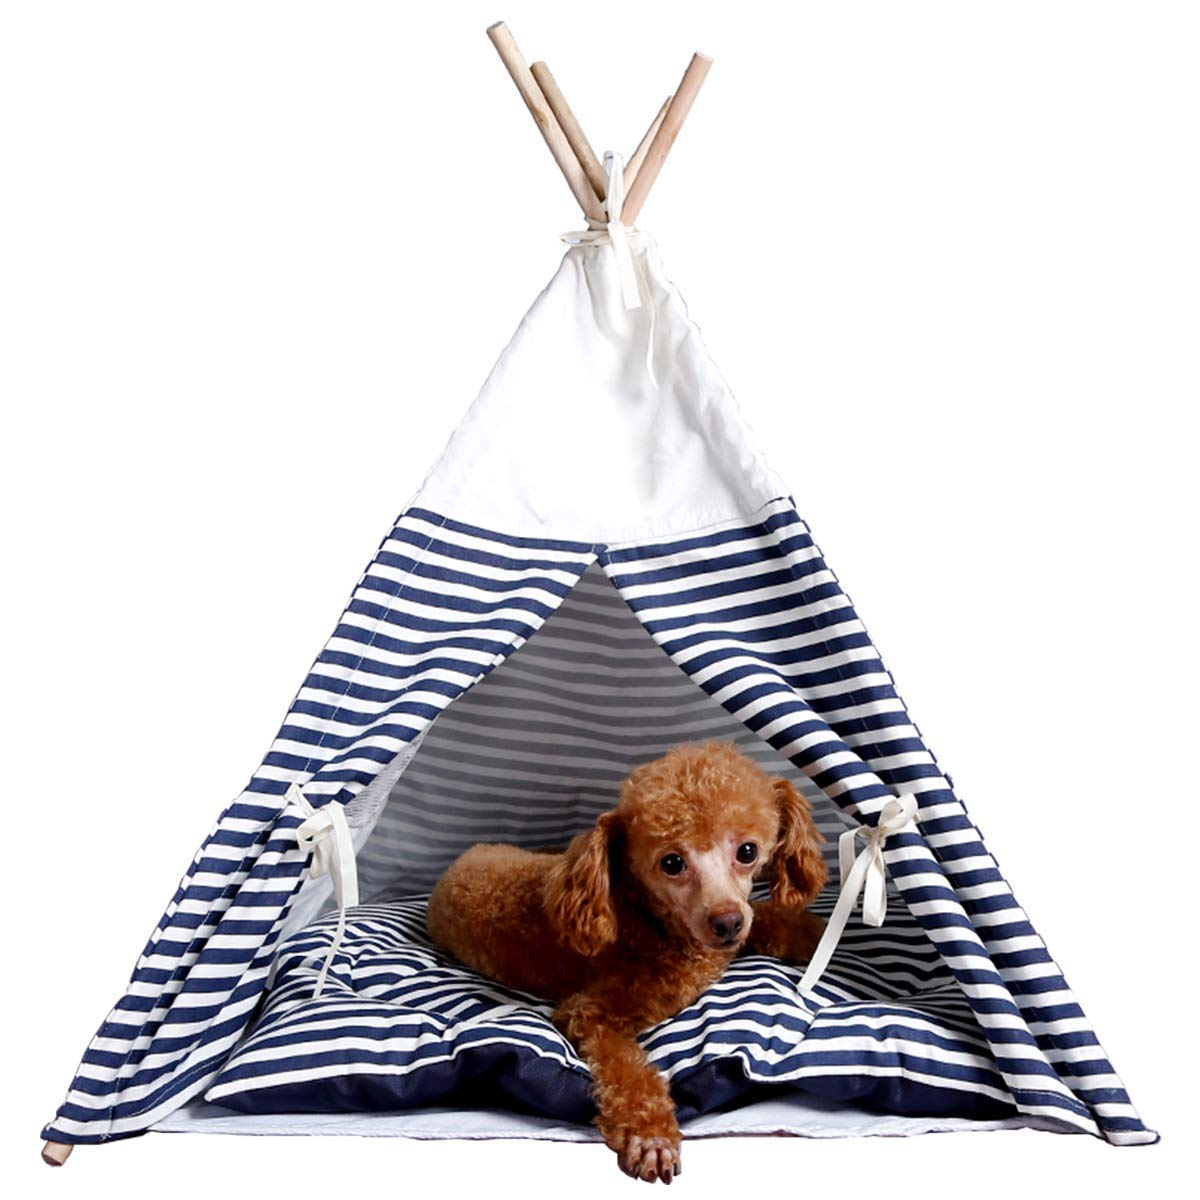 Nocushions Pet Teepee Dog Cat Bed Portable Pet Tents & Houses for Dog(Puppy) & Cat Navy Stripe 26 Inch with Thick Cushion, for Pets Up to 25 lbs